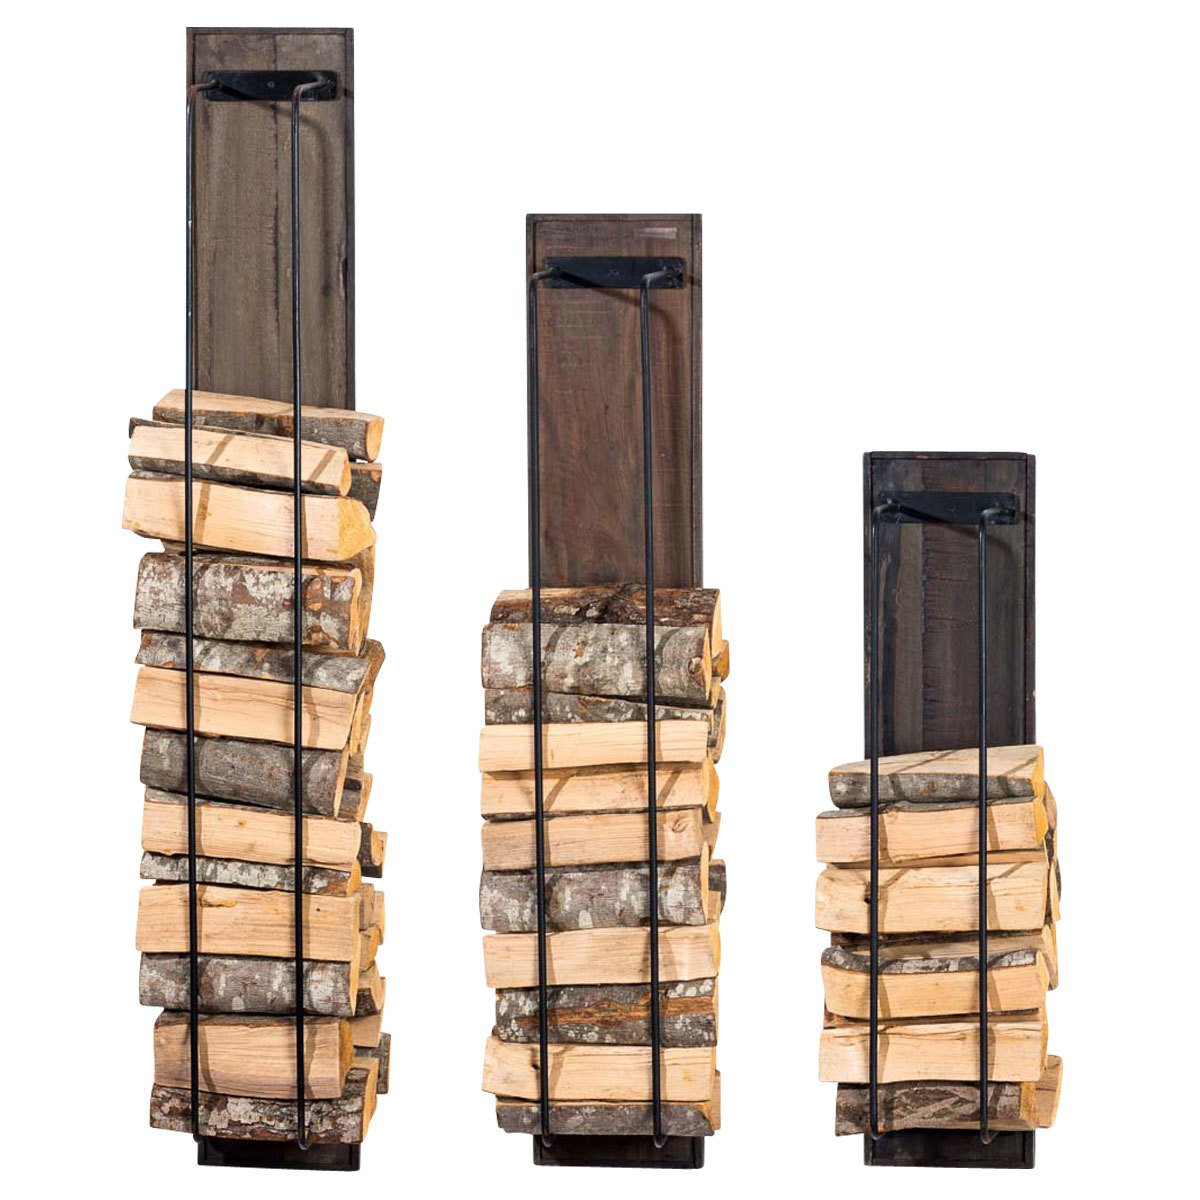 CLP Firewood rack HOUSTON made of wood, fire wood rack for wall mounting, log holder with iron crossbars, sturdy construction 22 x 23 x 93 cm